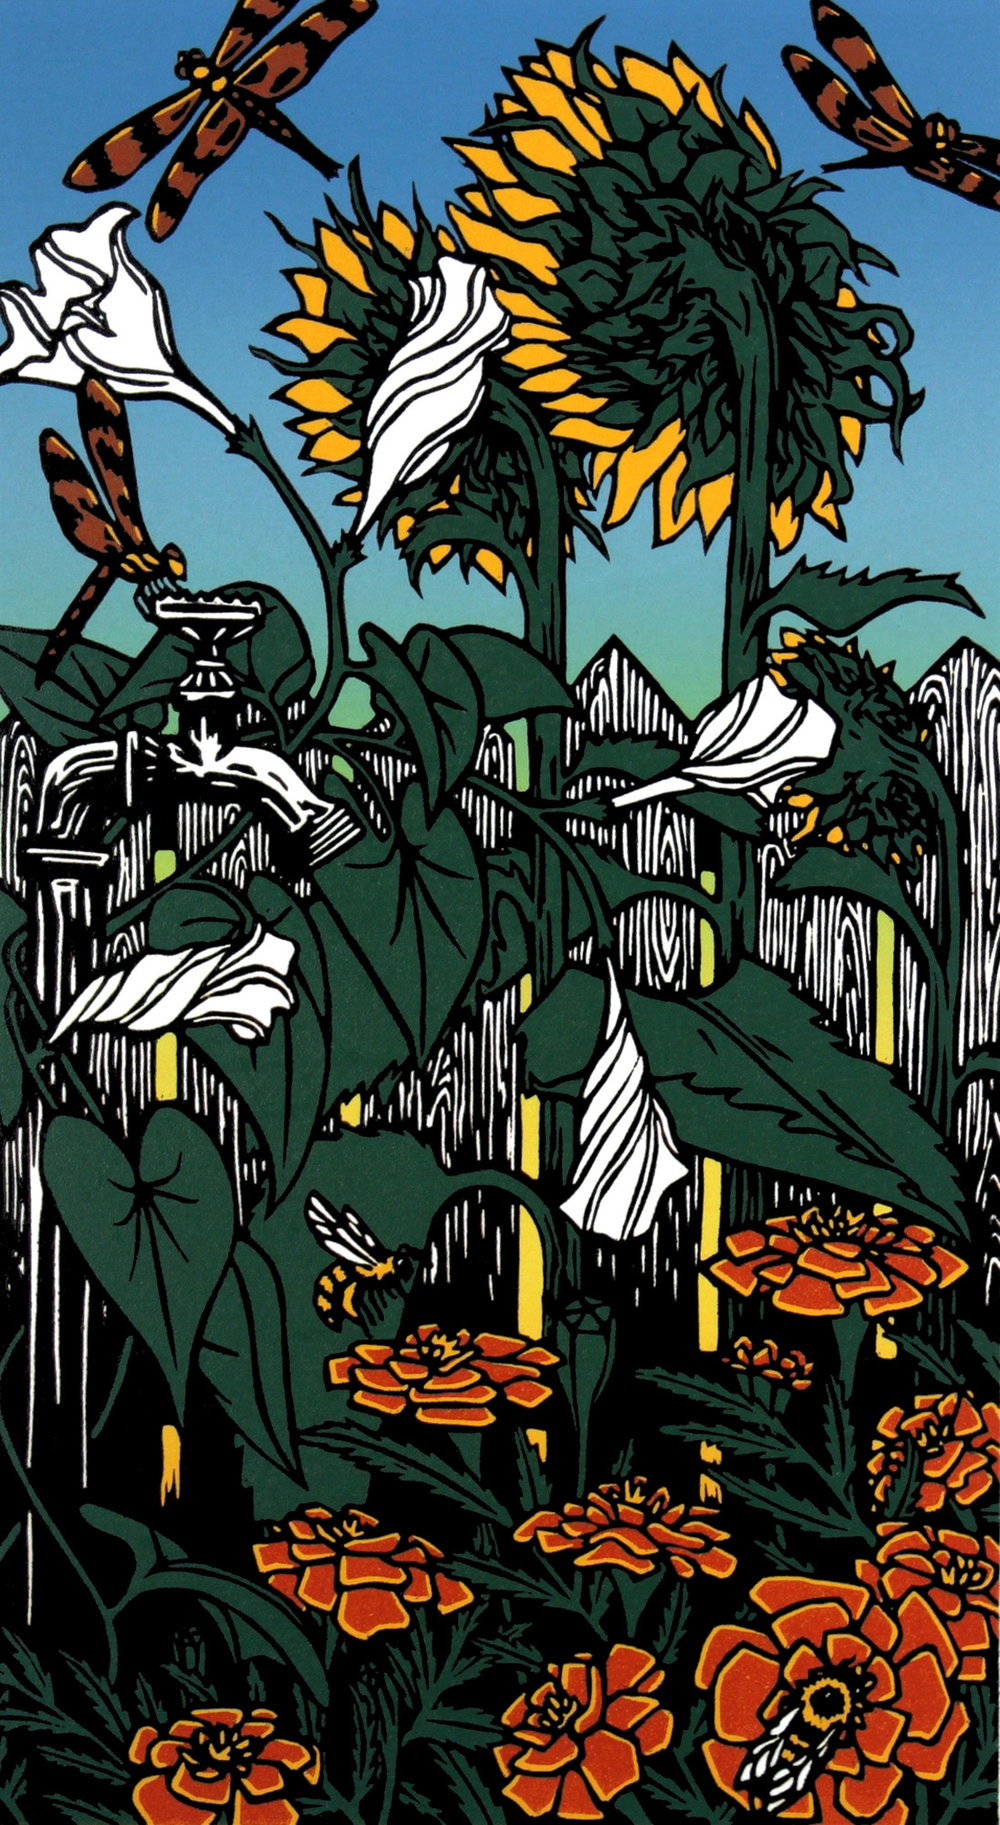 Emily Koehler    Astraeus's Garden  Color-Reduction Woodcut 18 x 10 inches, APS 225G